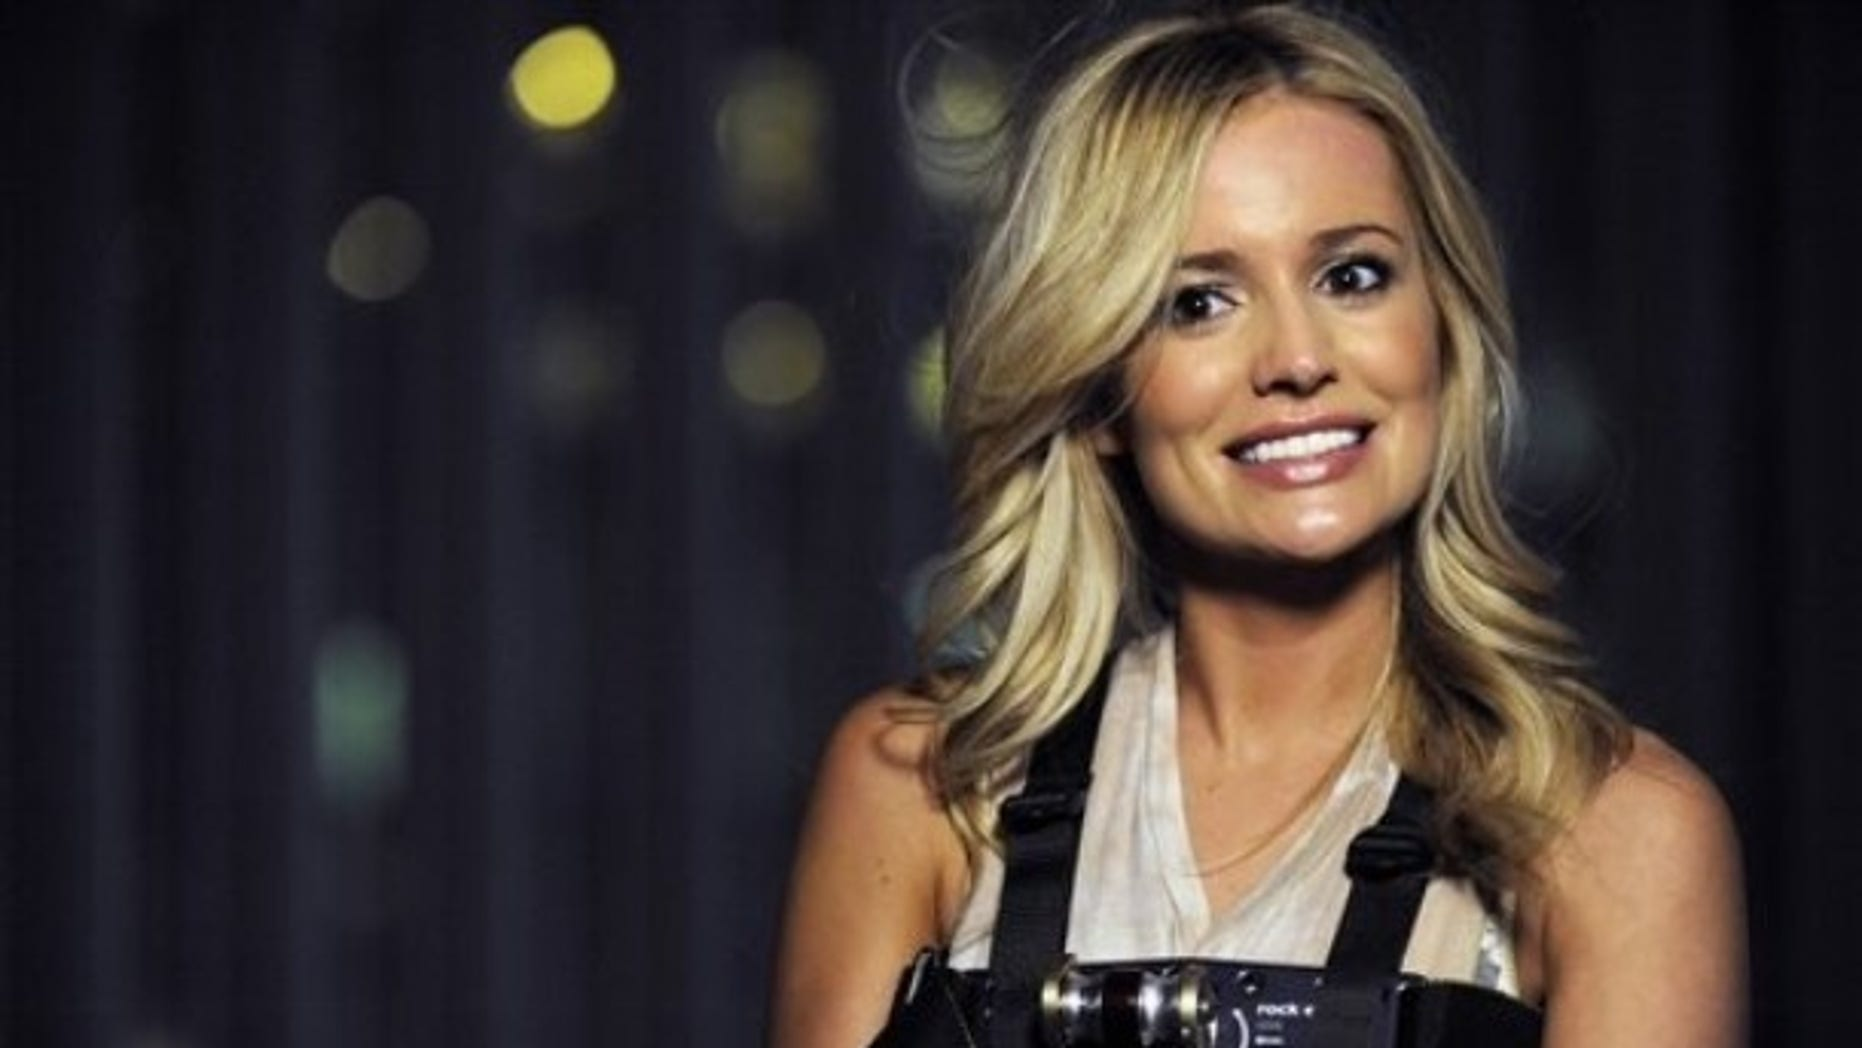 March 2012. Emily Maynard, a former contestant on 'The Bachelor' and star of 'The Bachelorette.'